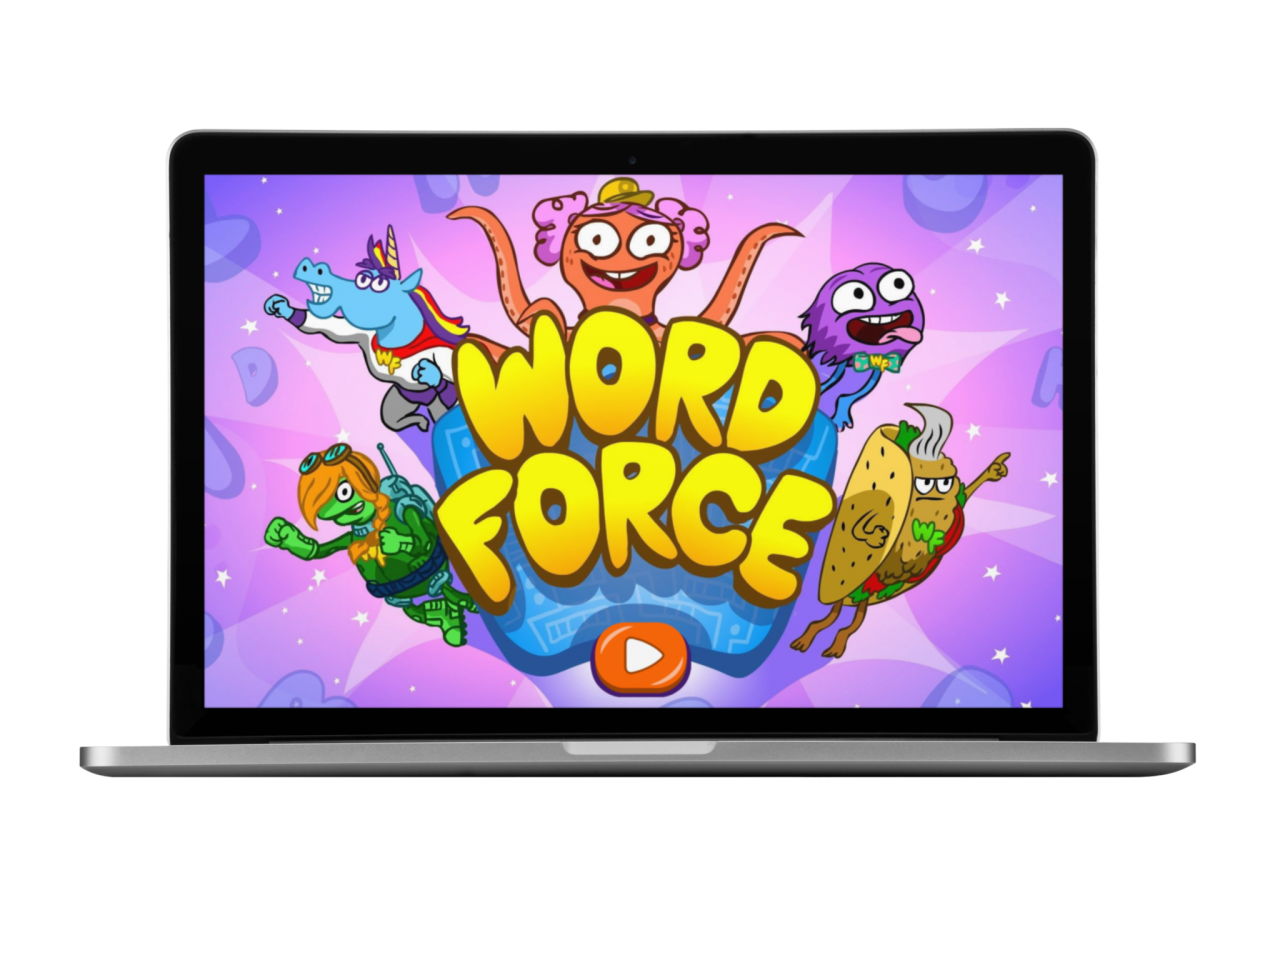 Word Force on a laptop computer